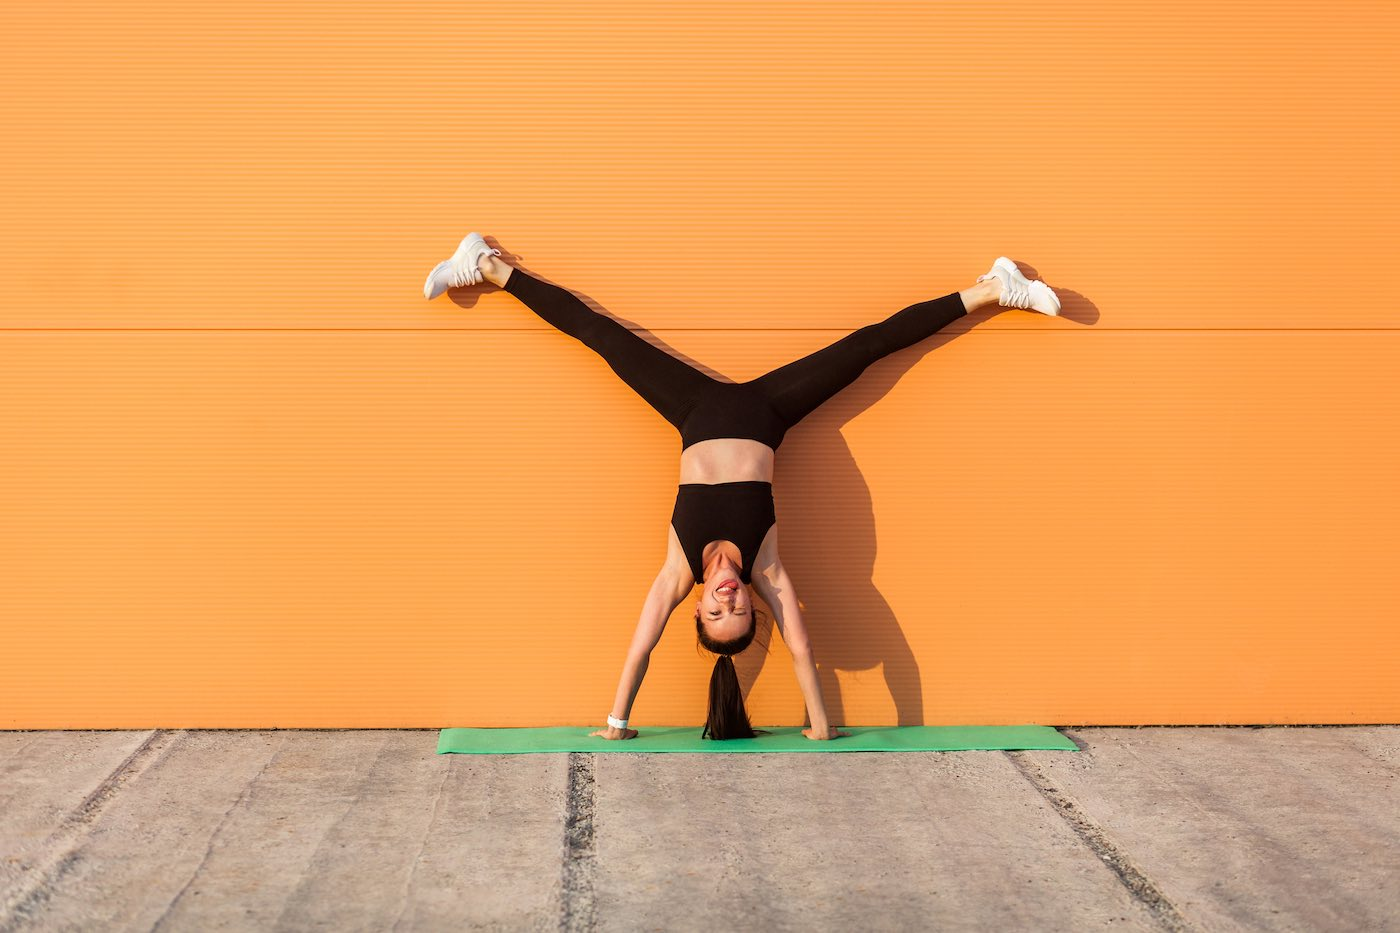 Thumbnail for The 'Handstand Challenge' Is Actually a Great Workout—Here's How to Modify It